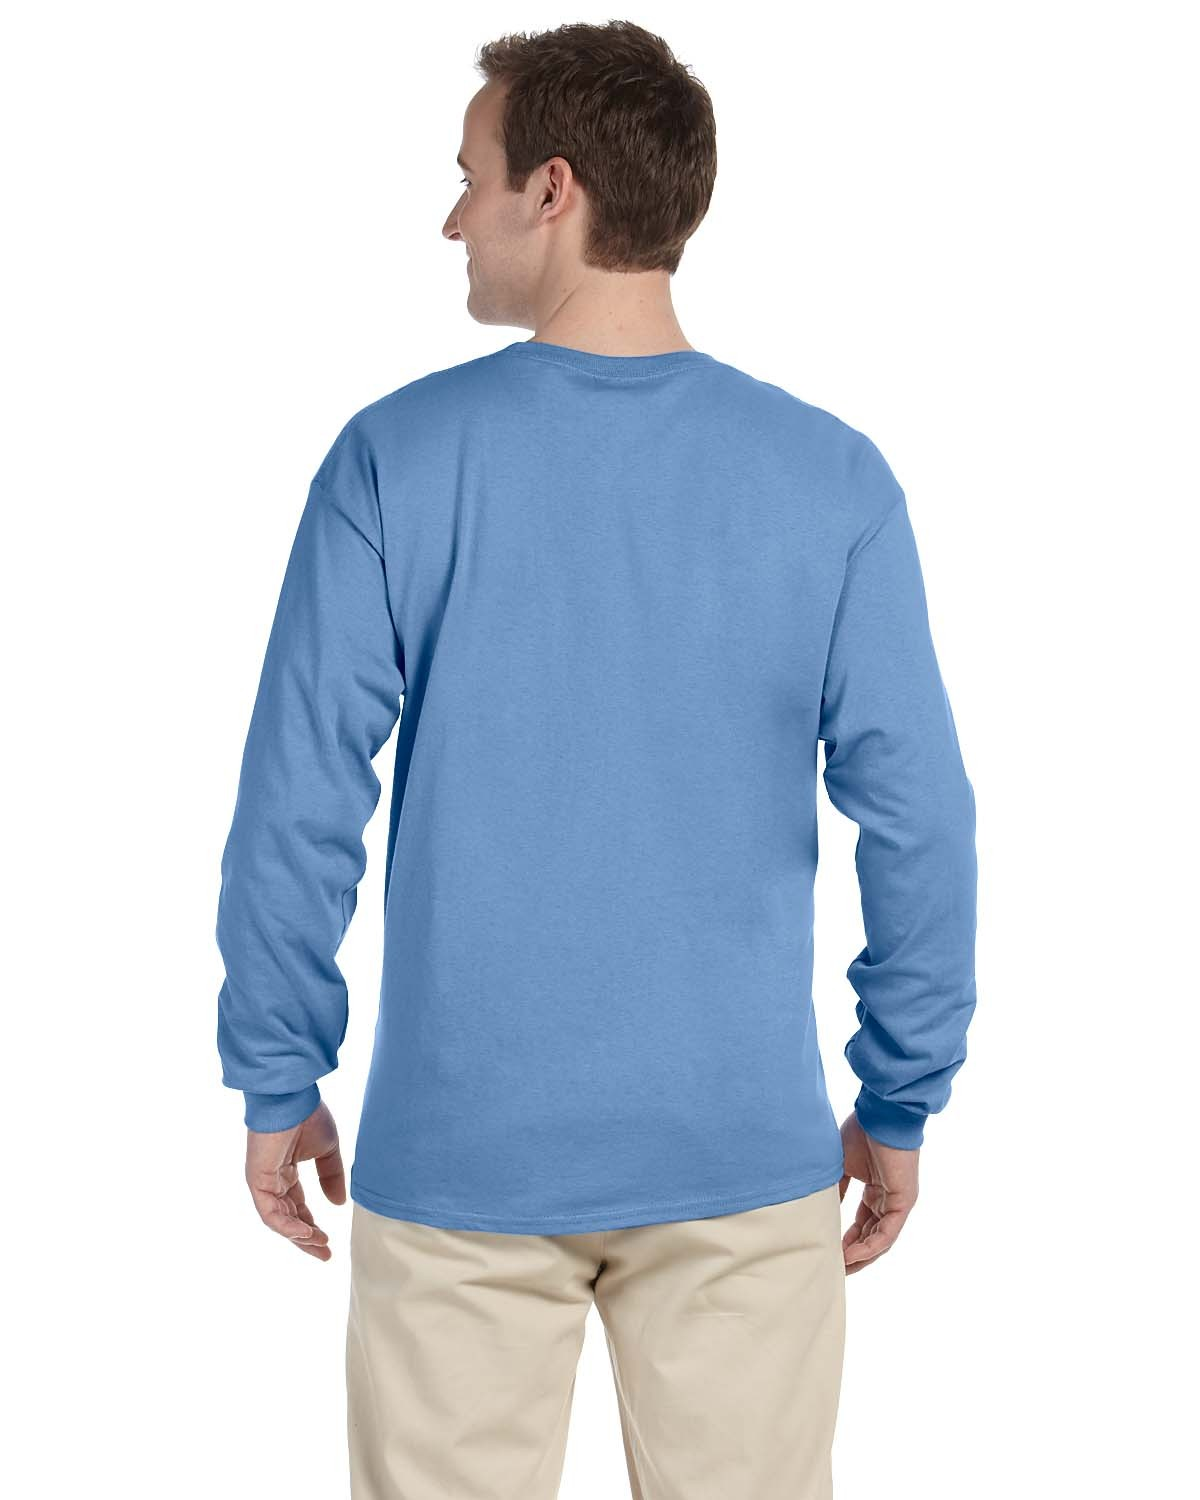 4930 Fruit of the Loom COLUMBIA BLUE